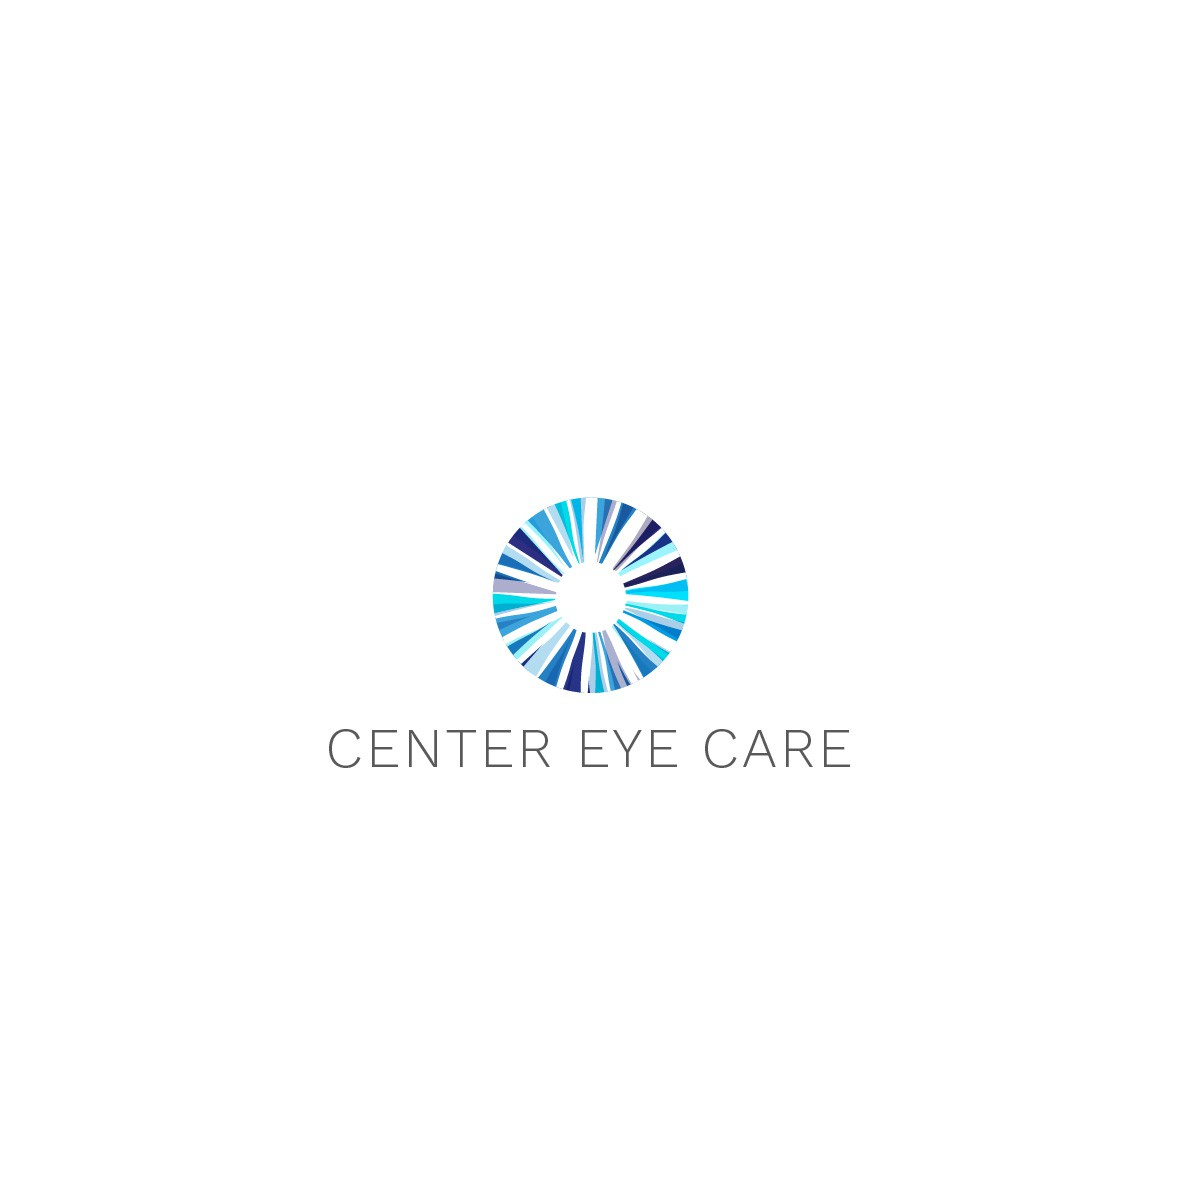 reinventing an eyecare business